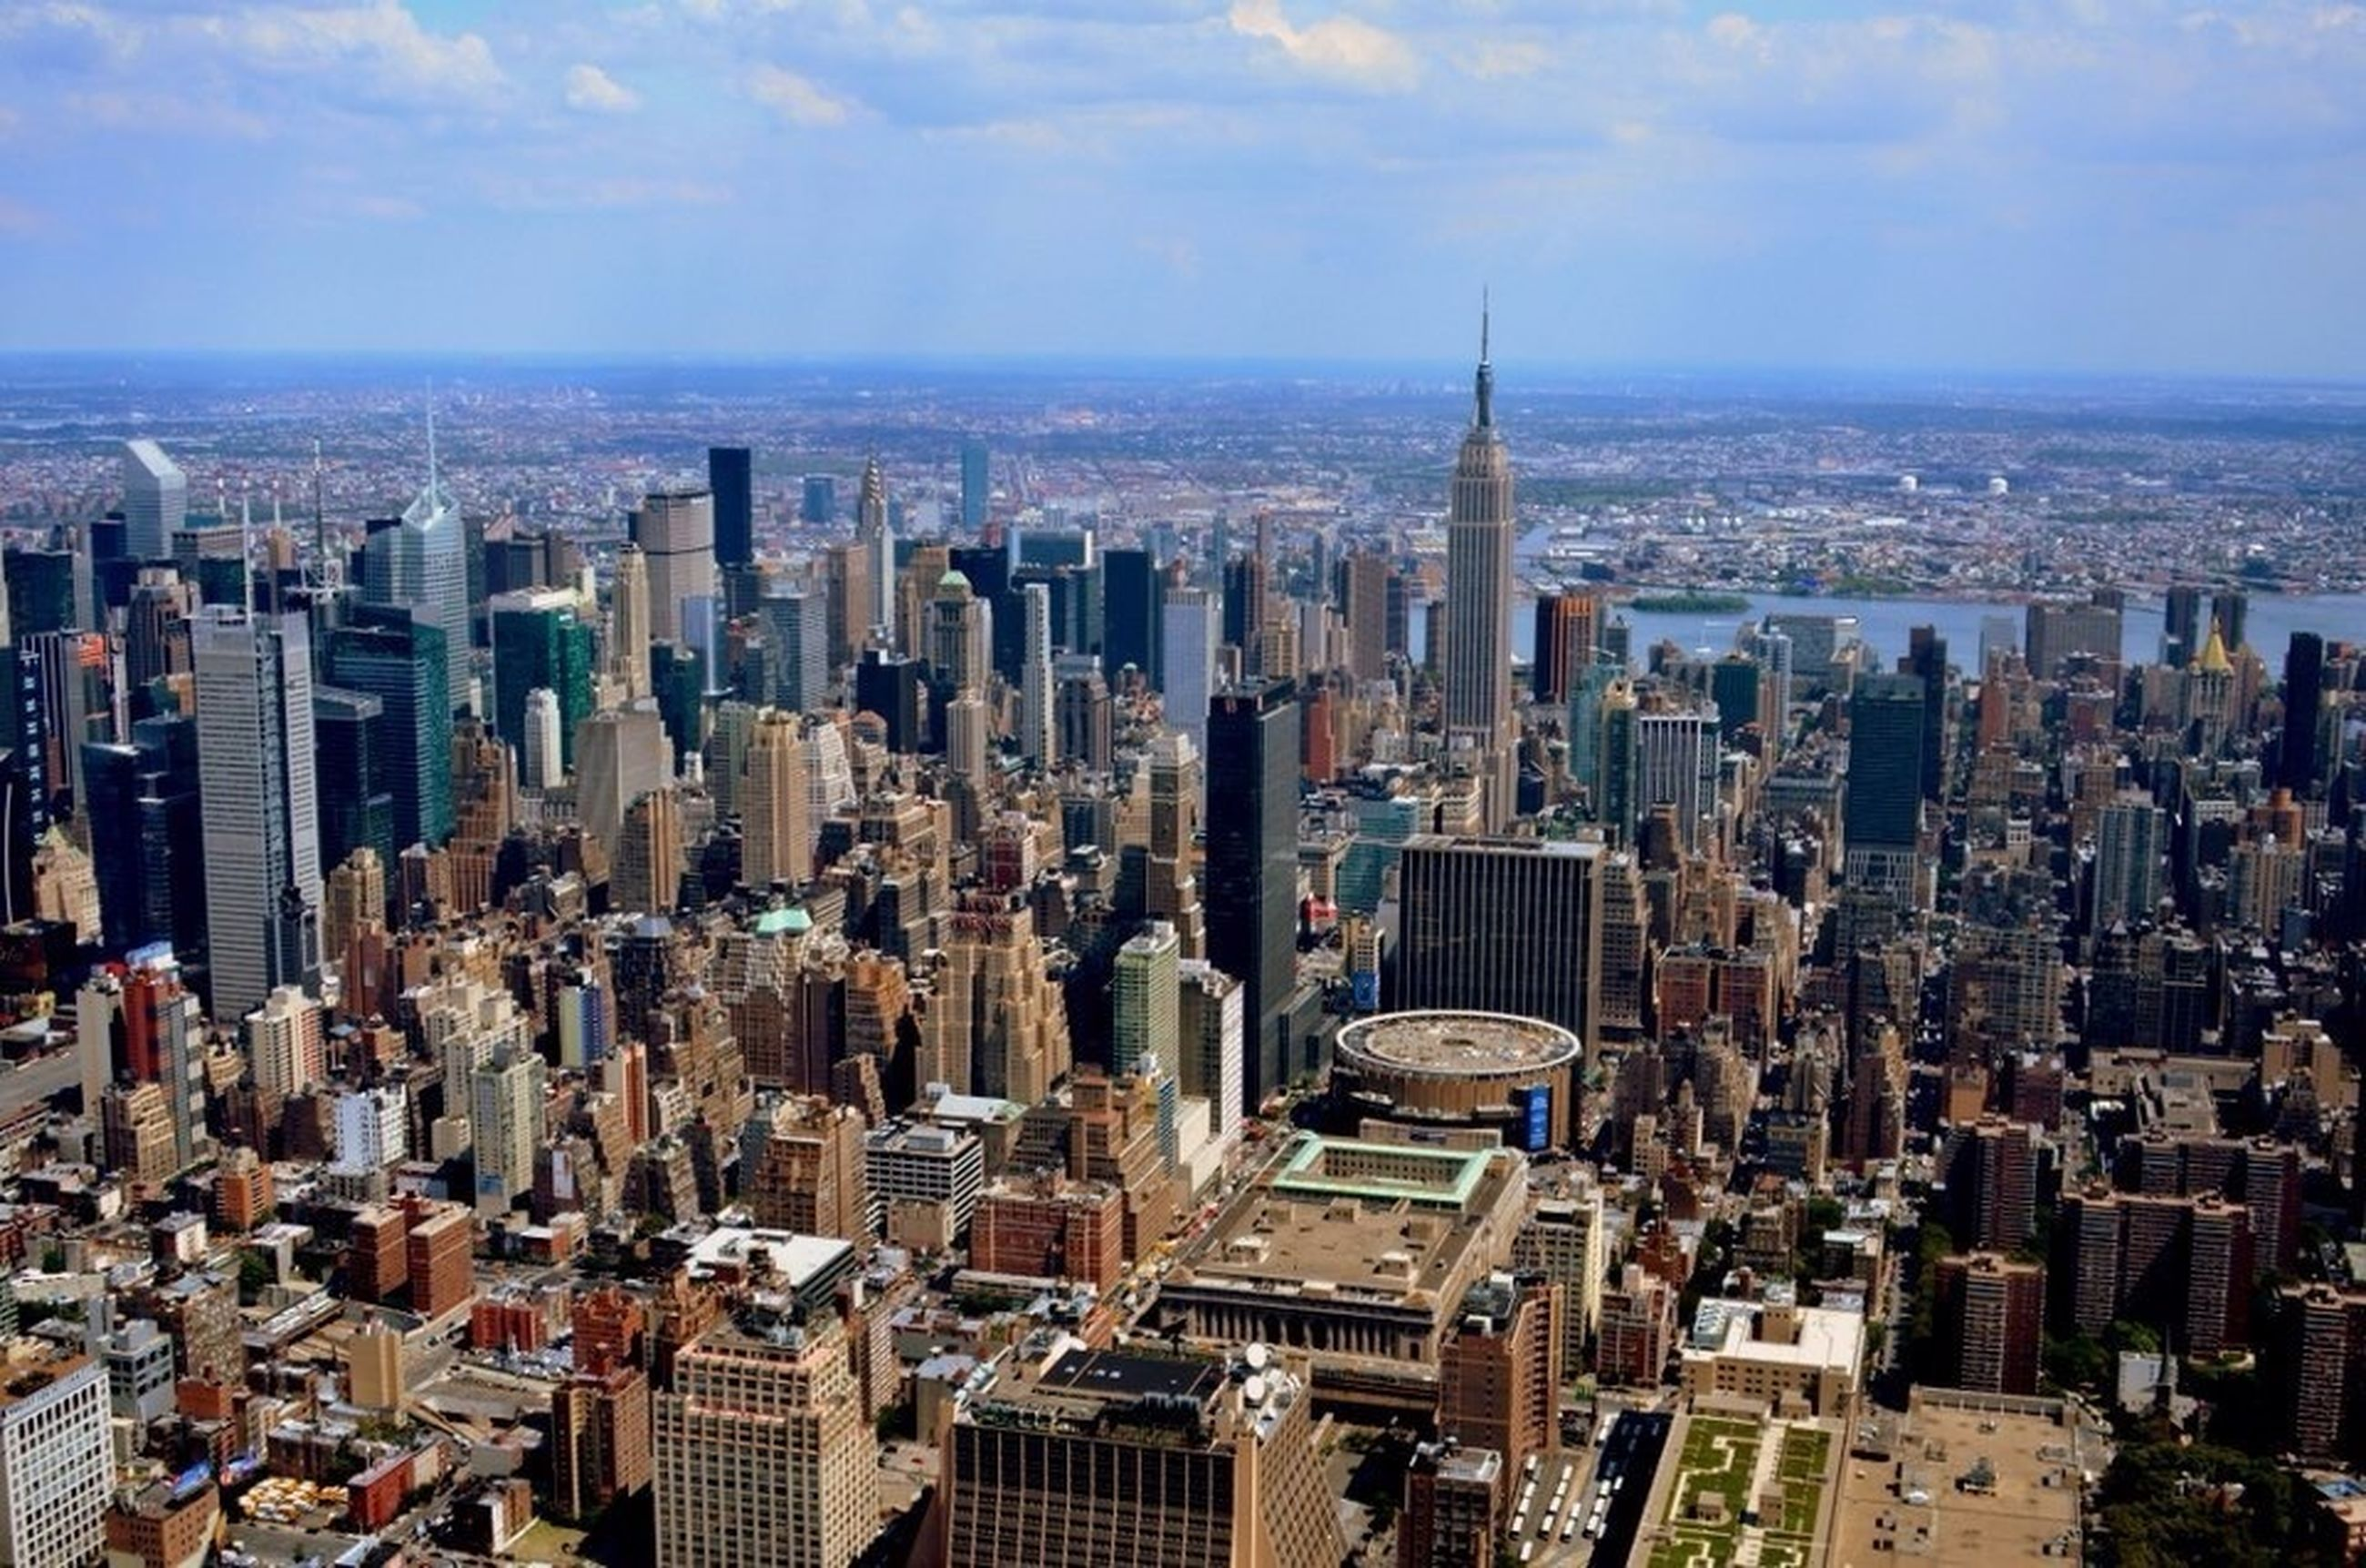 city, cityscape, building exterior, architecture, skyscraper, built structure, crowded, tall - high, tower, modern, office building, sky, financial district, high angle view, capital cities, urban skyline, travel destinations, city life, downtown district, cloud - sky